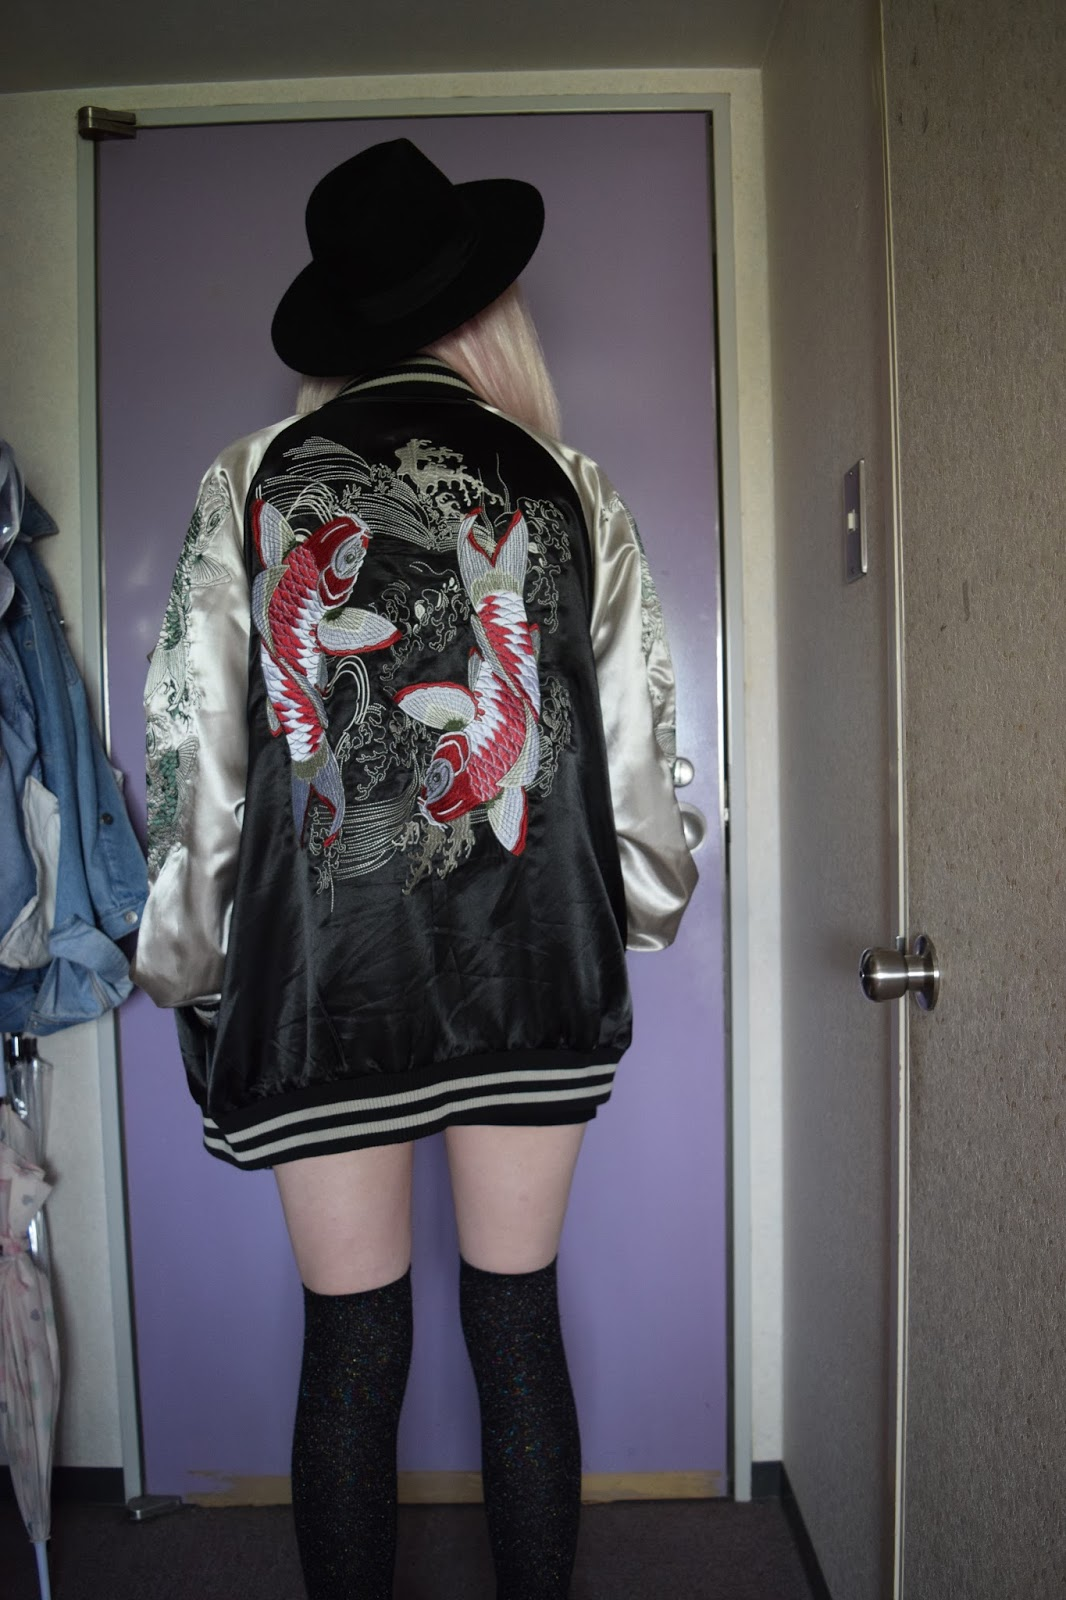 Souvenir jacket jfashion OOTD